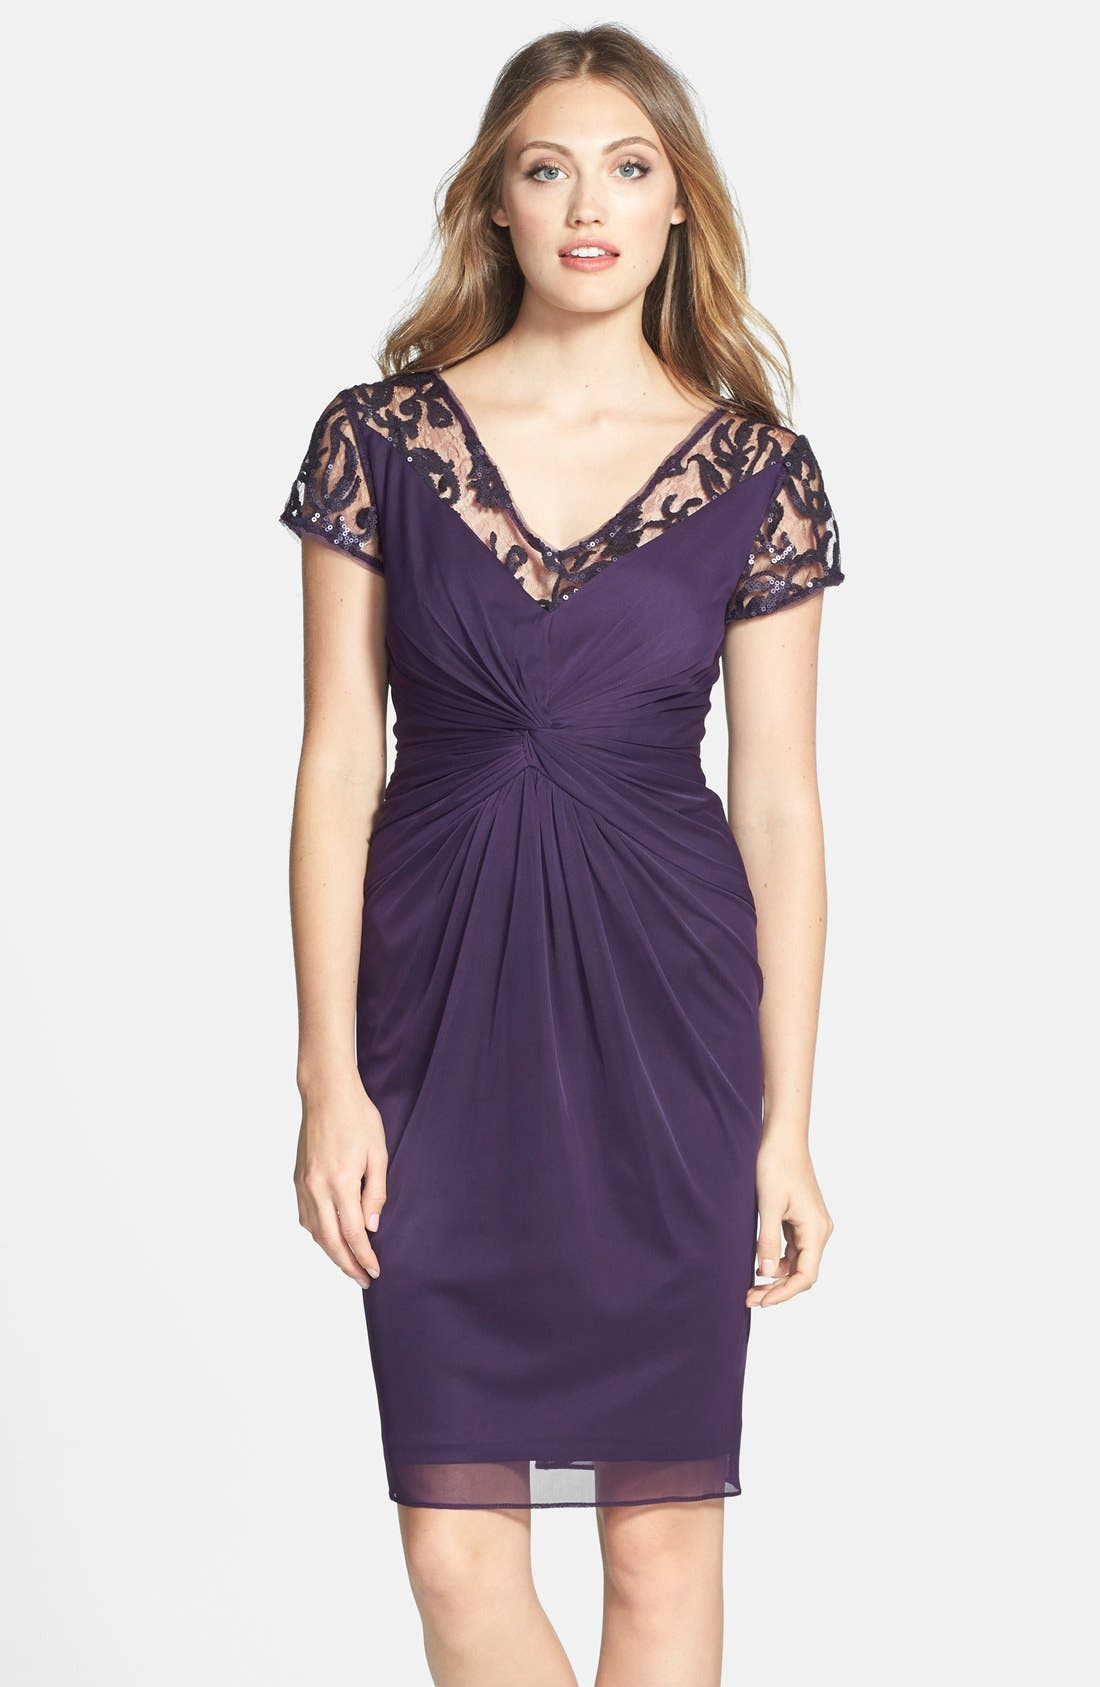 Alternate Image 1 Selected - Adrianna Papell Sequin Lace & Tulle Sheath Dress